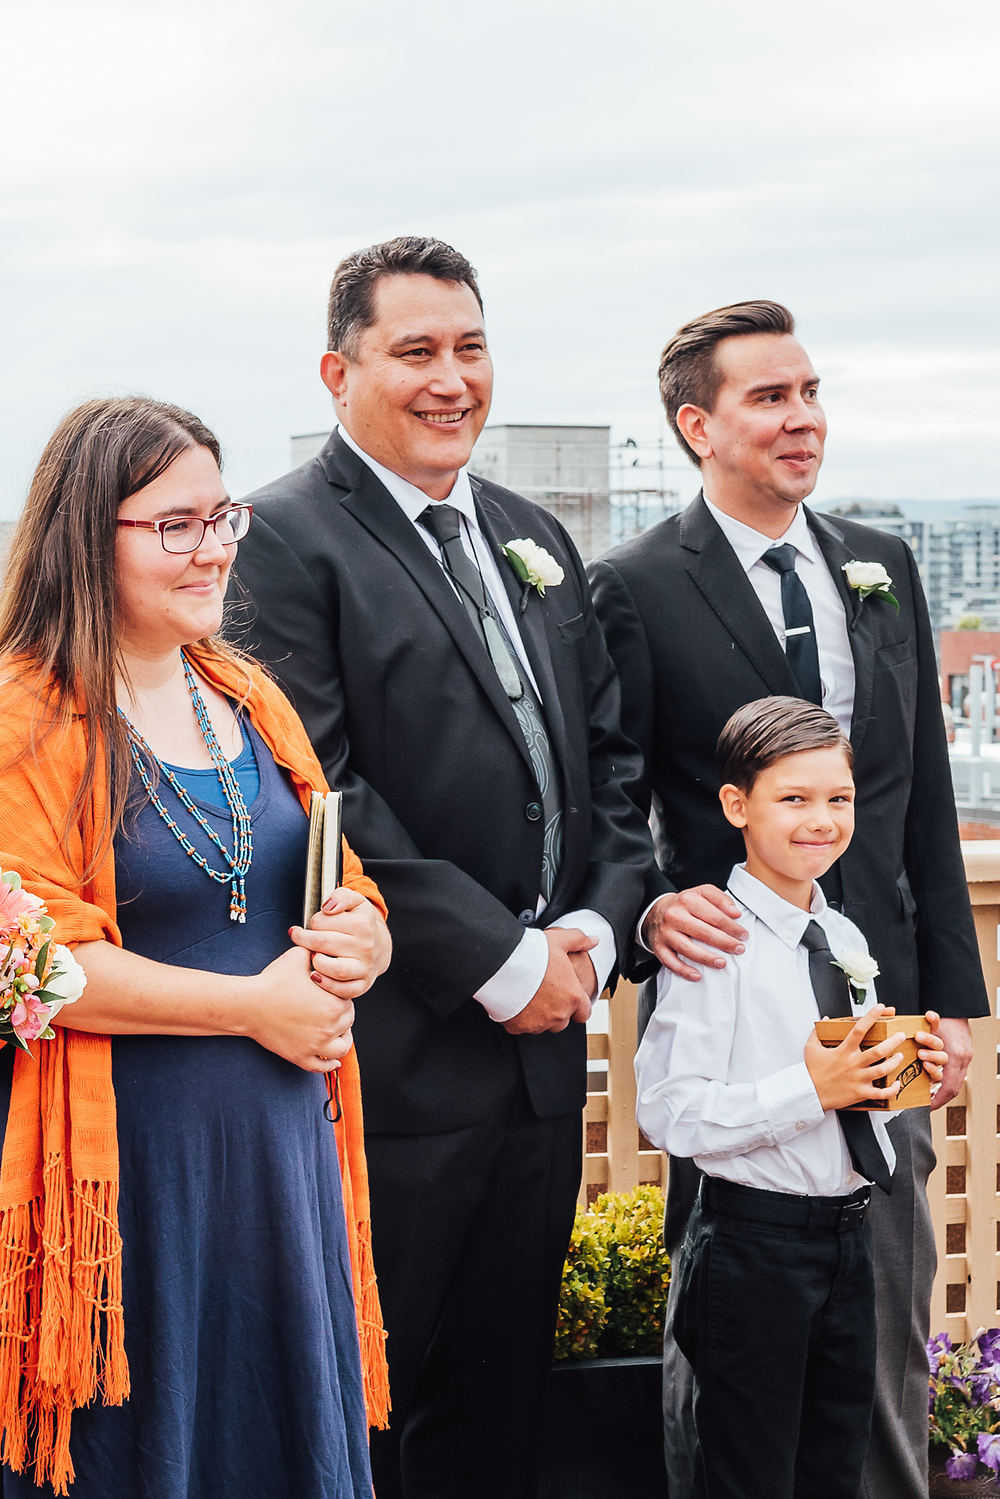 Lily_and_Lane_Childrens_Photographer_Victoria_BC-27.jpg